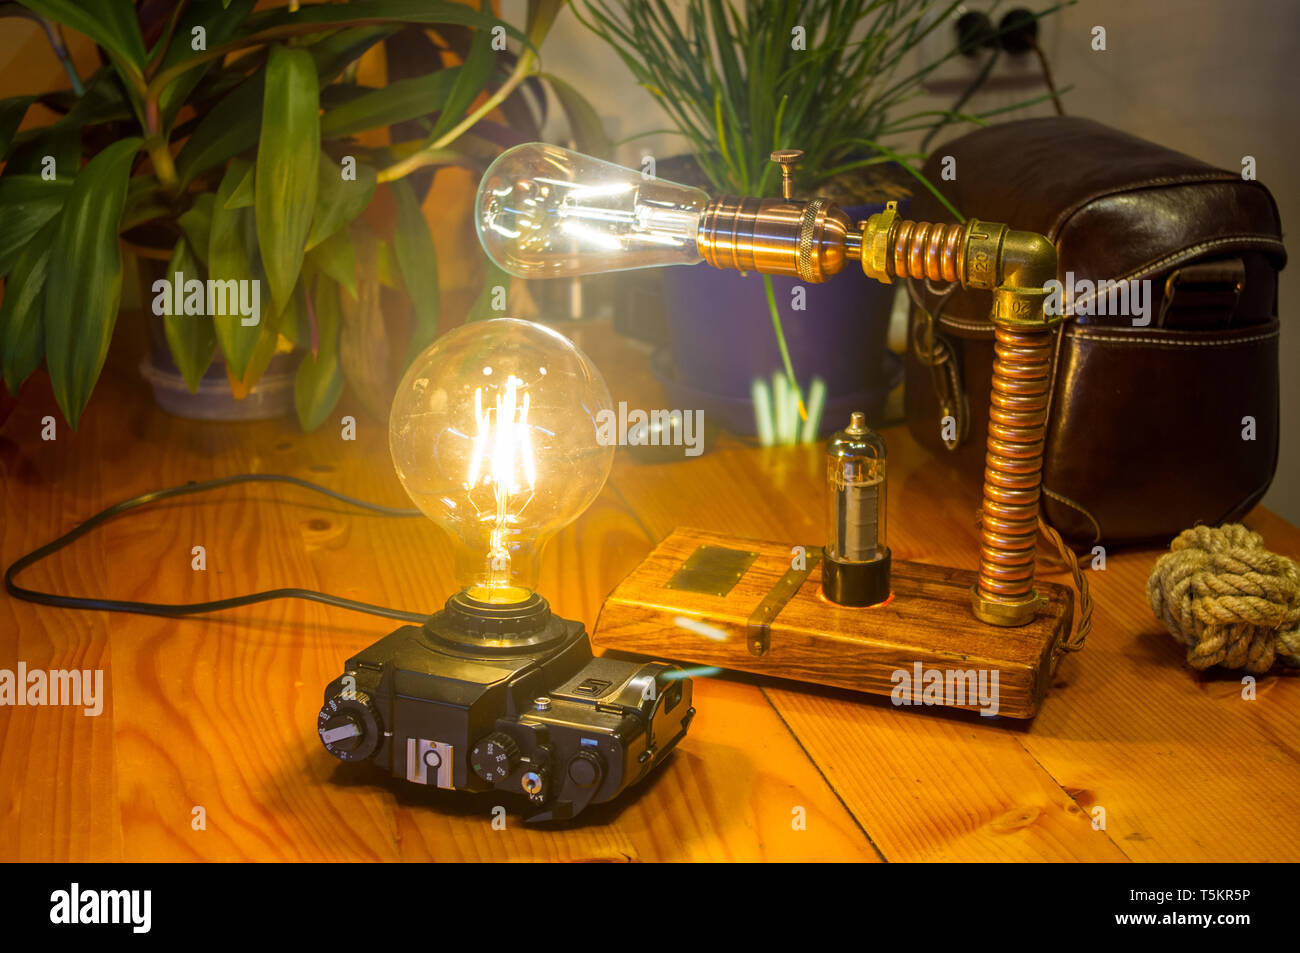 Light fixtures handmade in vintage style, retro film SLR camera case and wooden case, led lamps - Stock Image